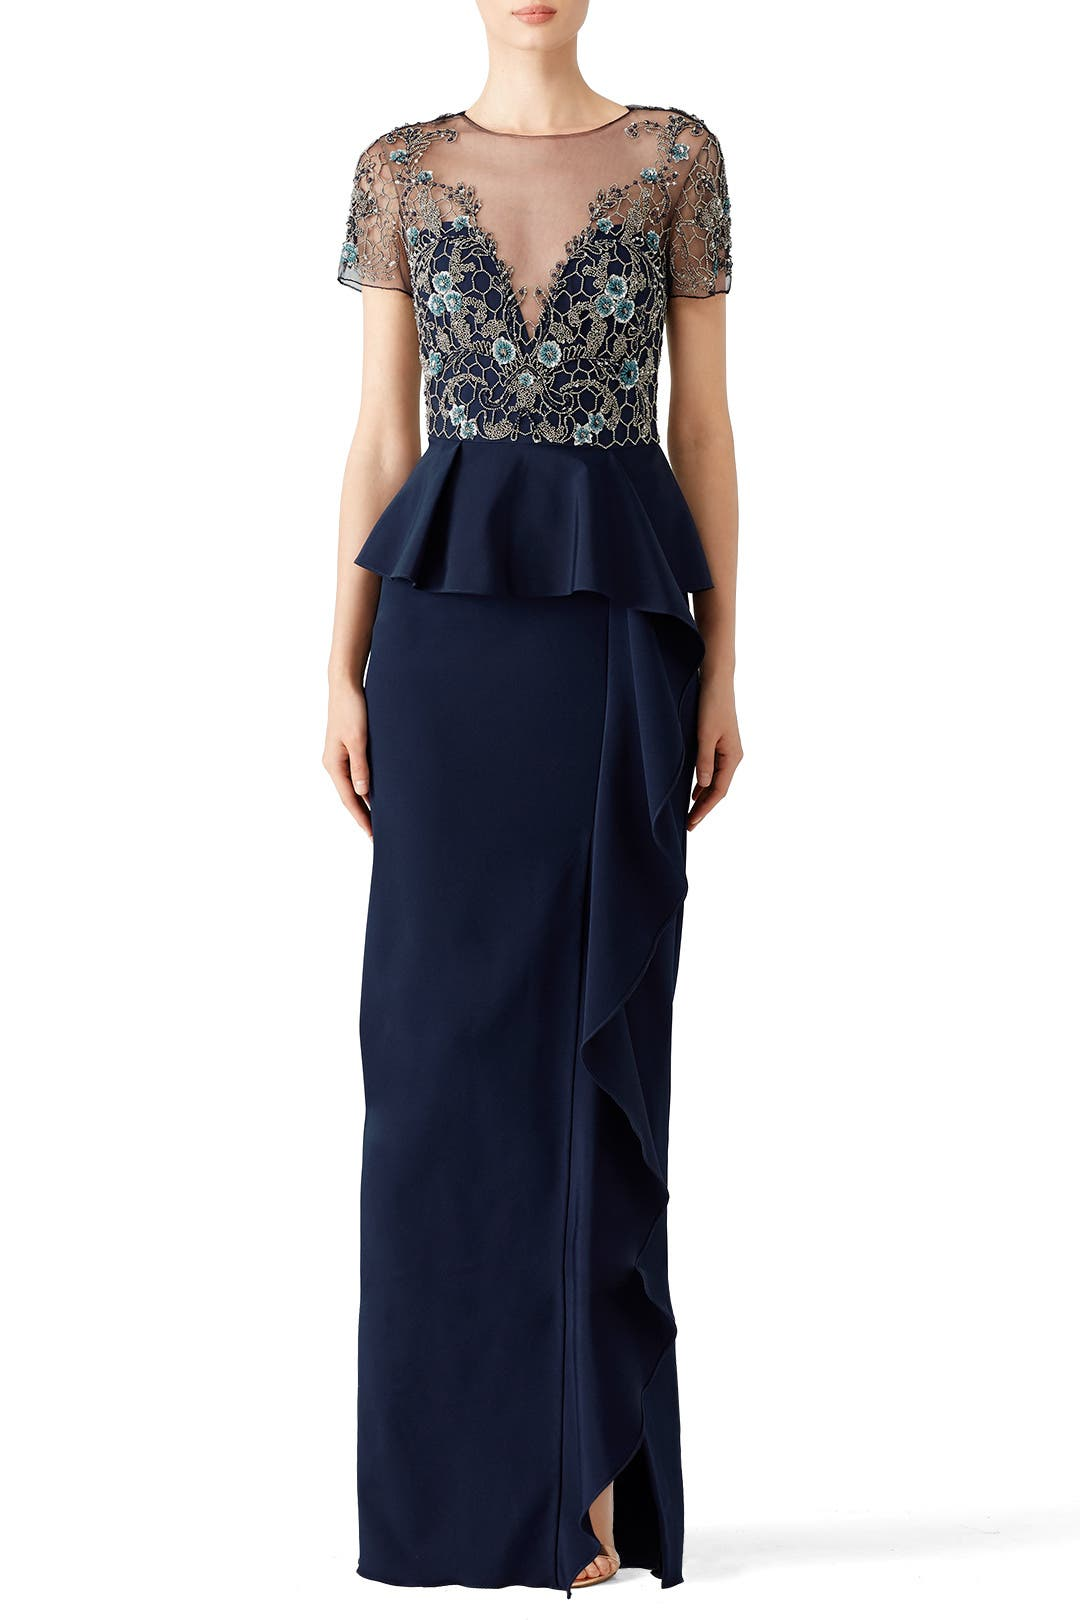 76bd5275b9 Navy Lace Ruffle Gown by Marchesa Notte for $180 | Rent the Runway